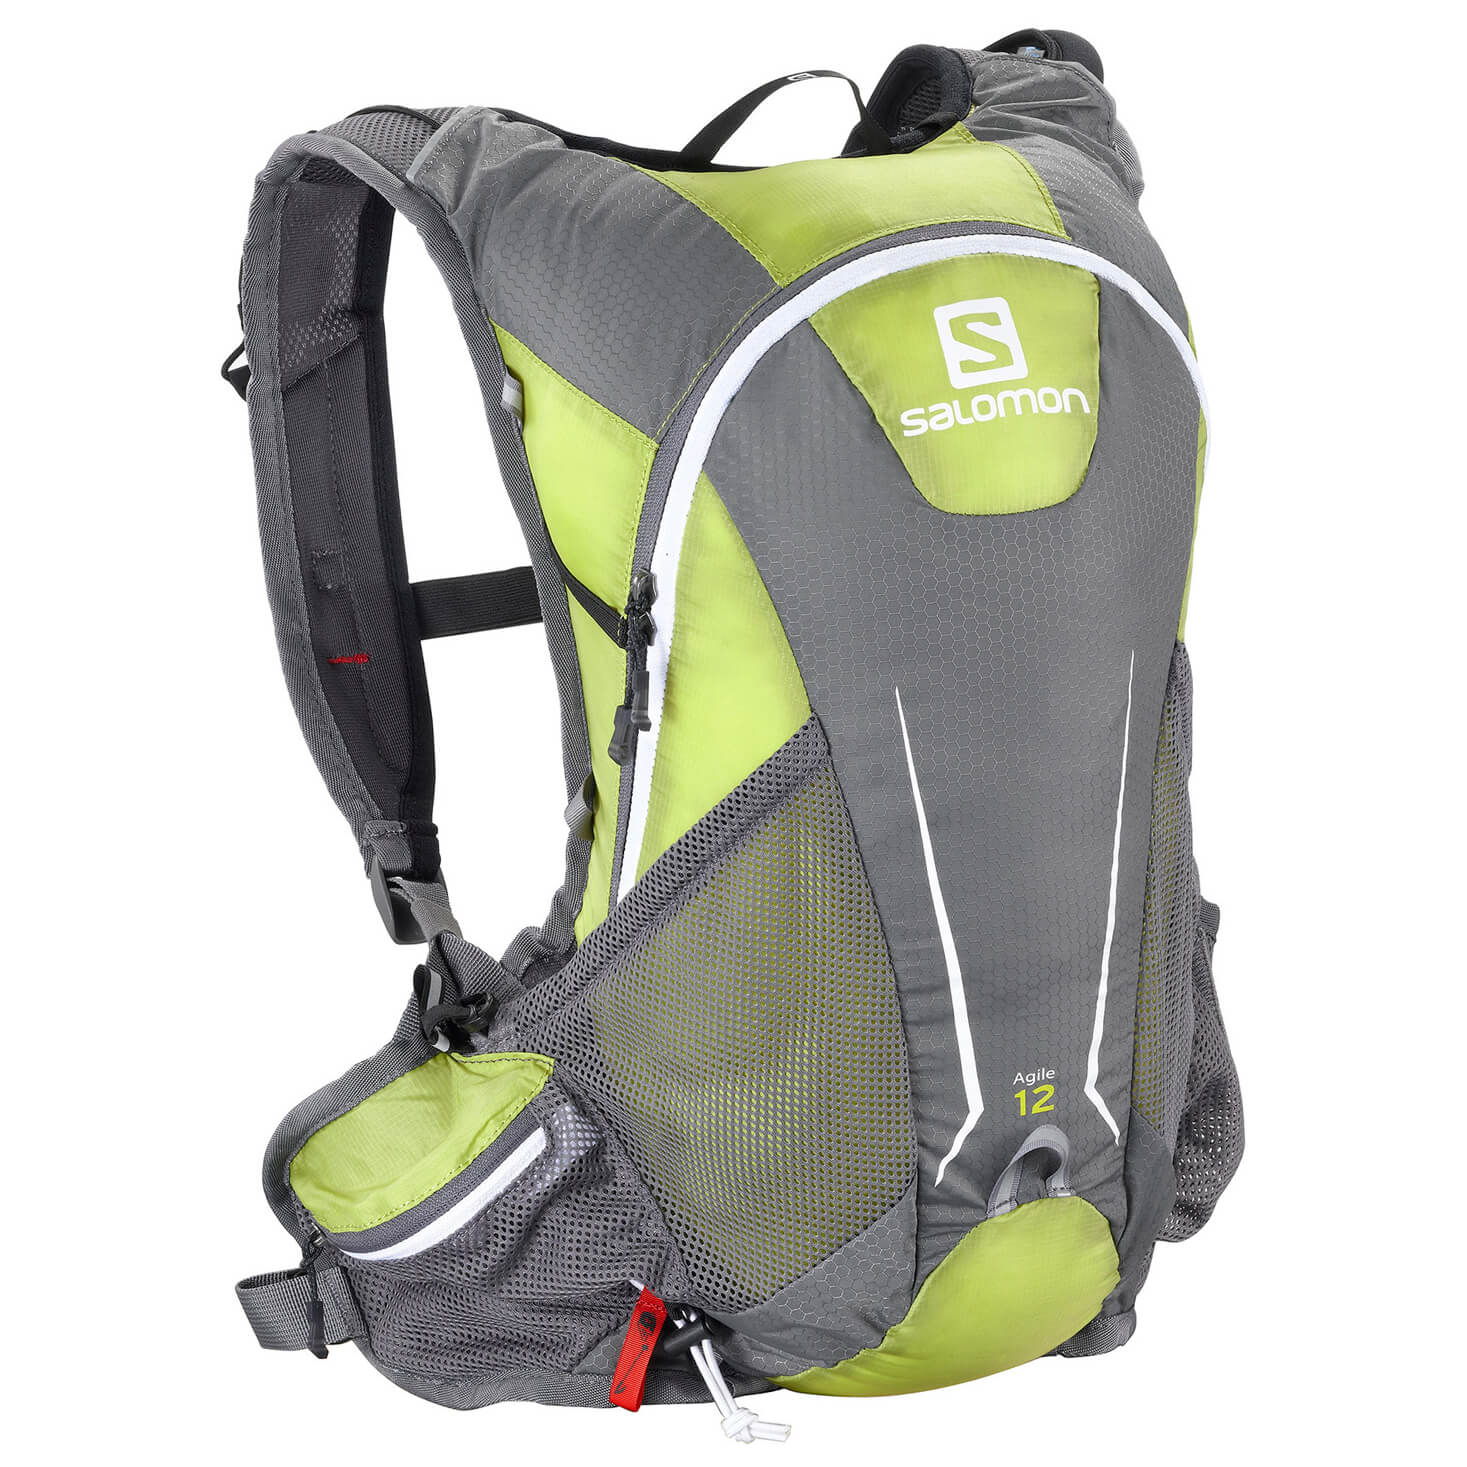 fe3648388c Salomon Agile 12 Leichter Trail Running Rucksack | The Shred Centre